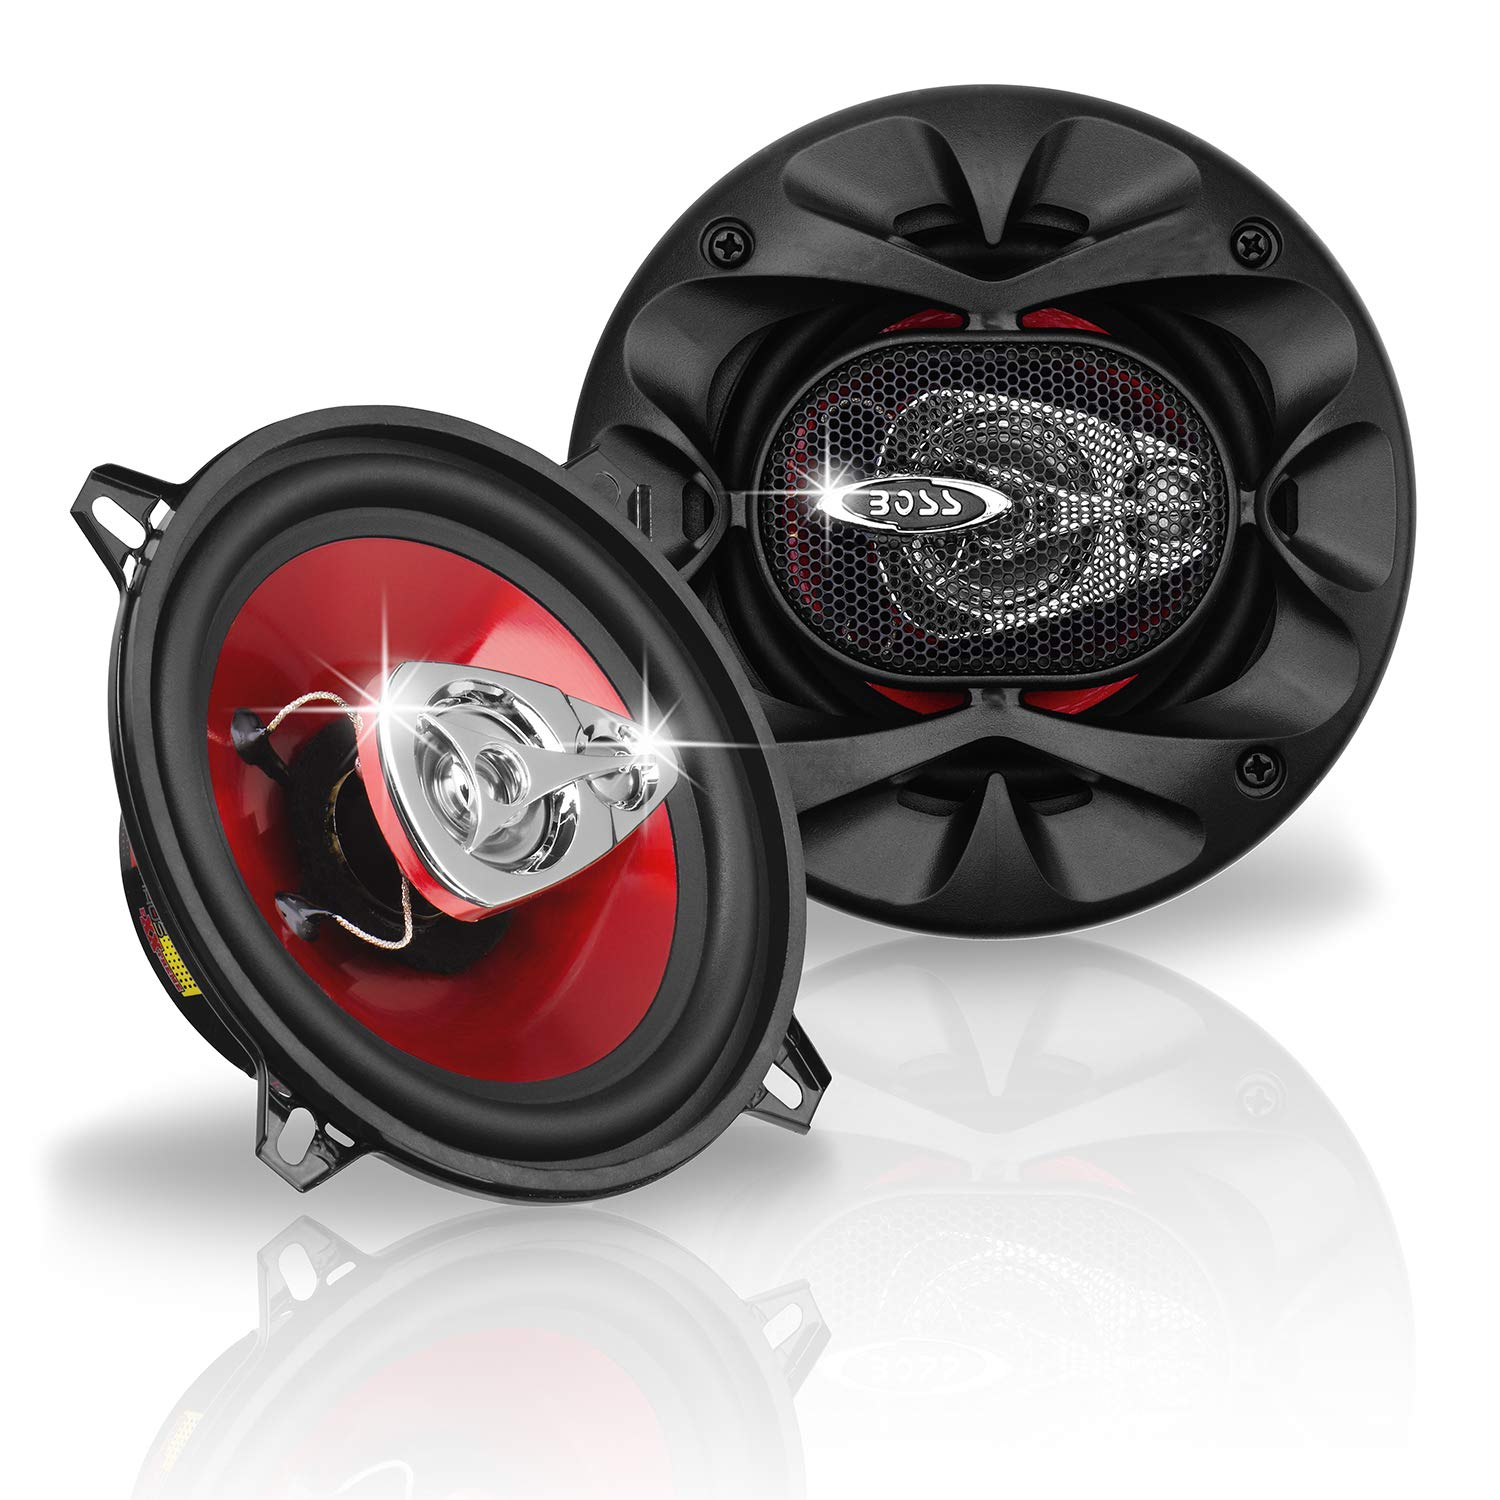 BOSS Audio CH5530 Car Speakers 225 Watts Of Power Per Pair And 112.5 Watts Each 5.25 Inch Easy Mounting Full Range 3 Way Sold in Pairs